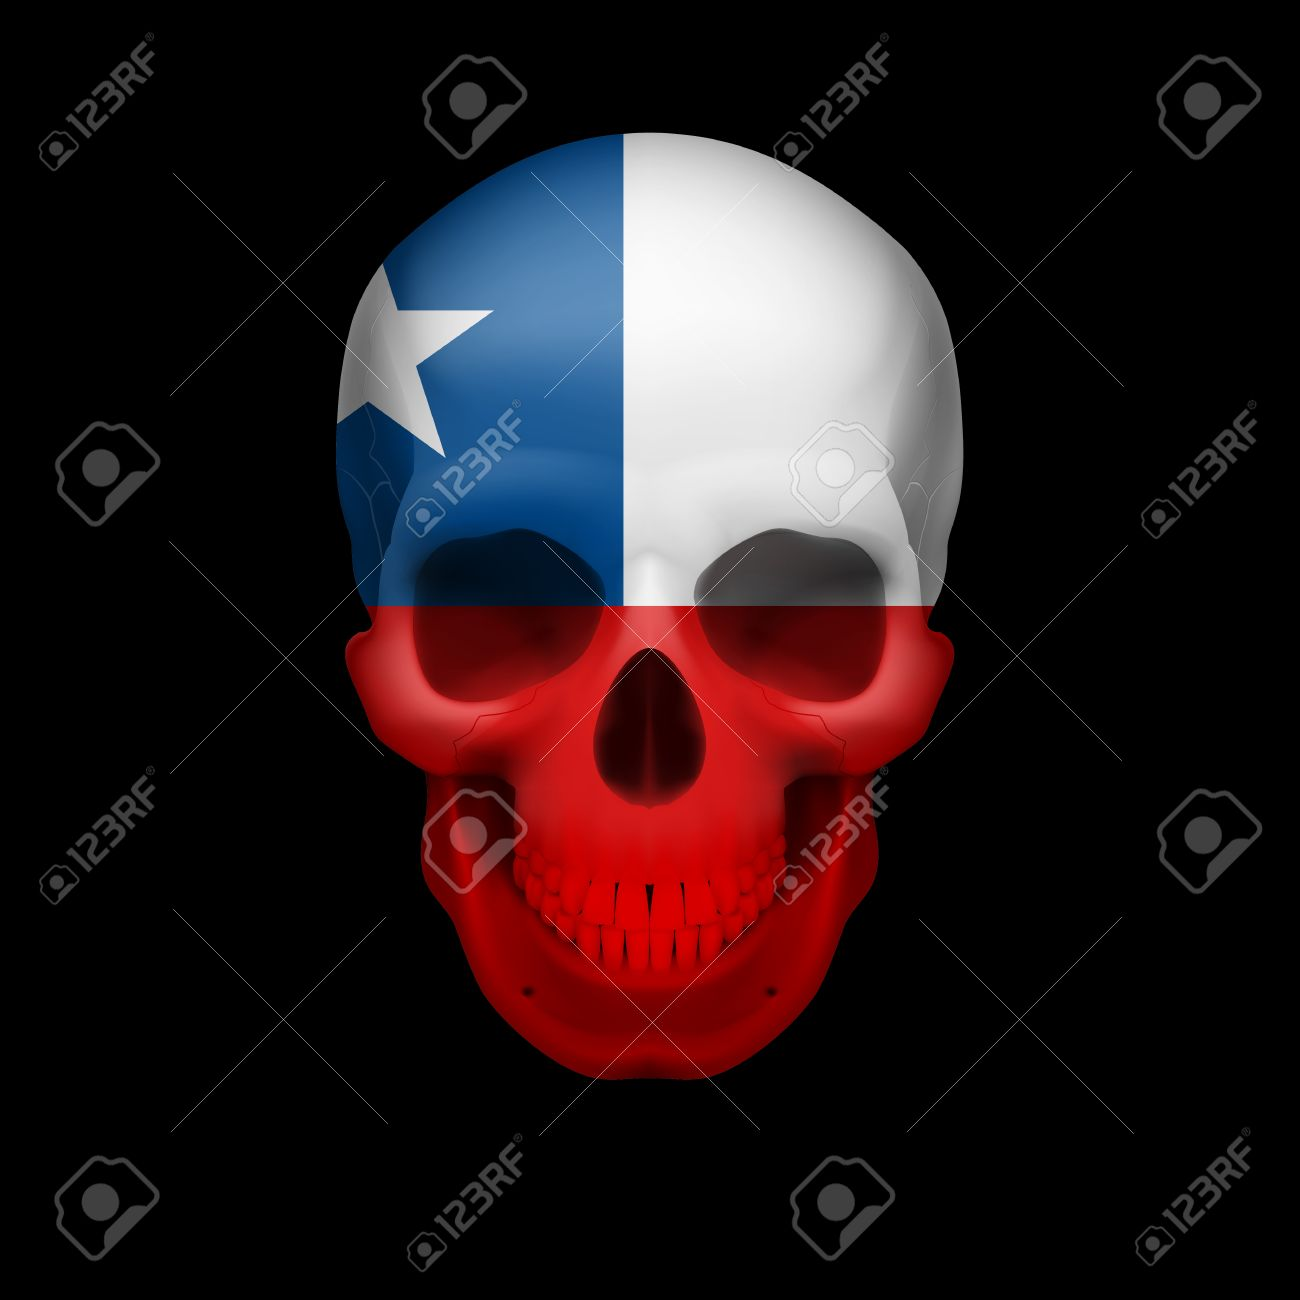 Human skull with flag of Chile. Threat to national security, war or dying out Stock Vector - 28609763